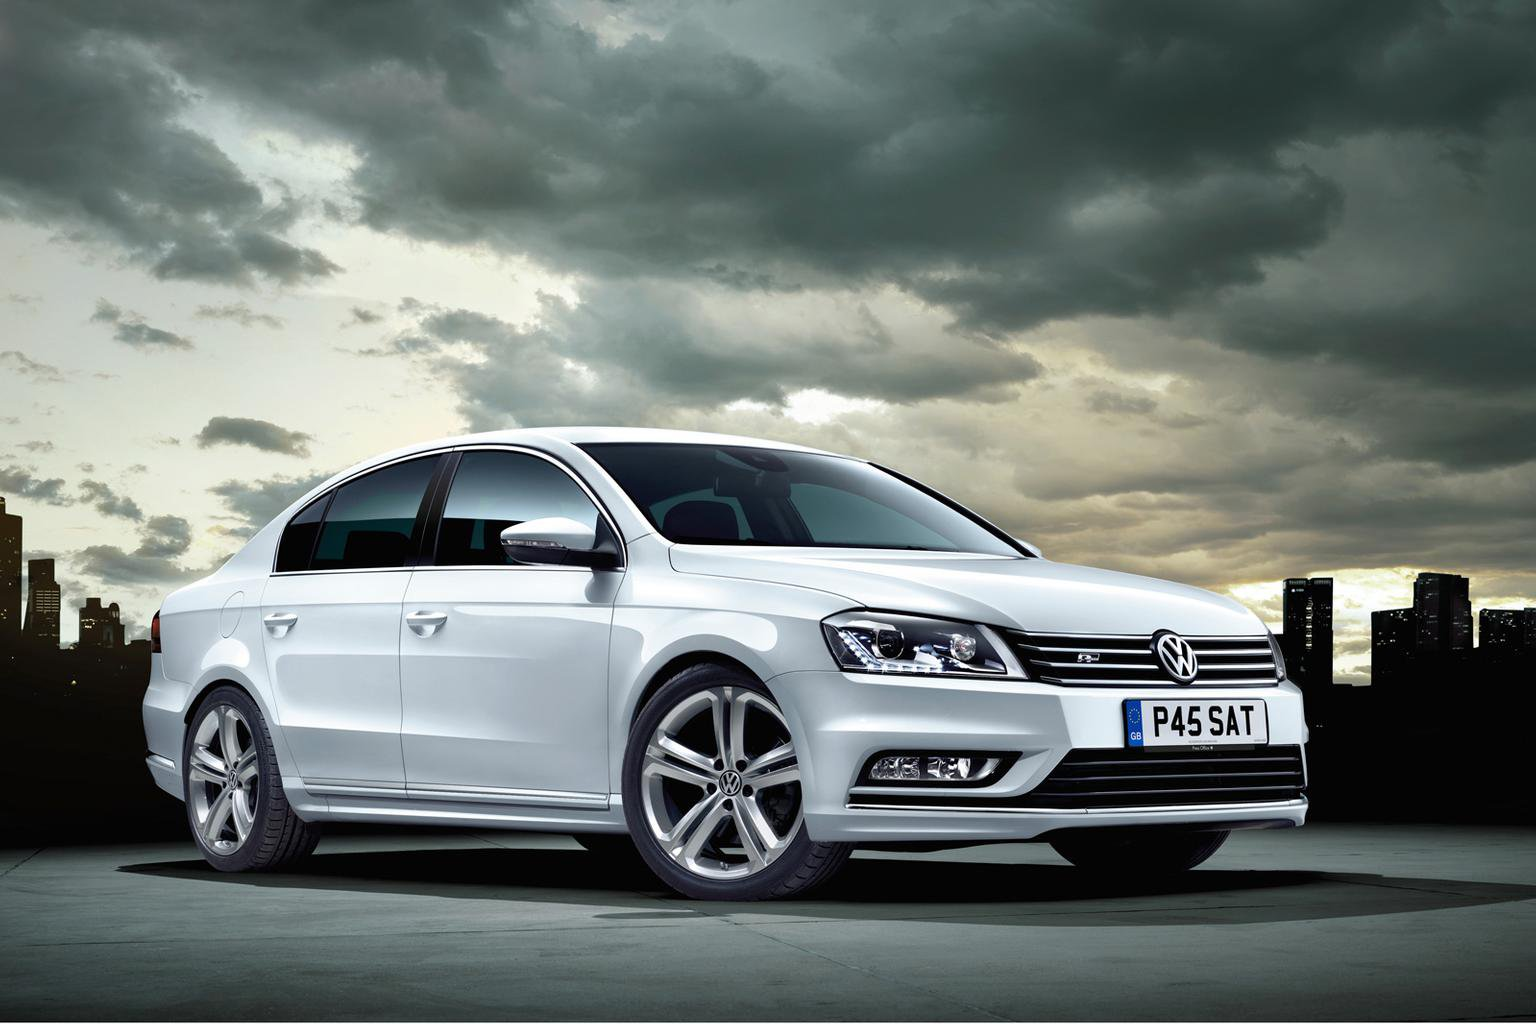 2014 Volkswagen Passat to set new safety standards